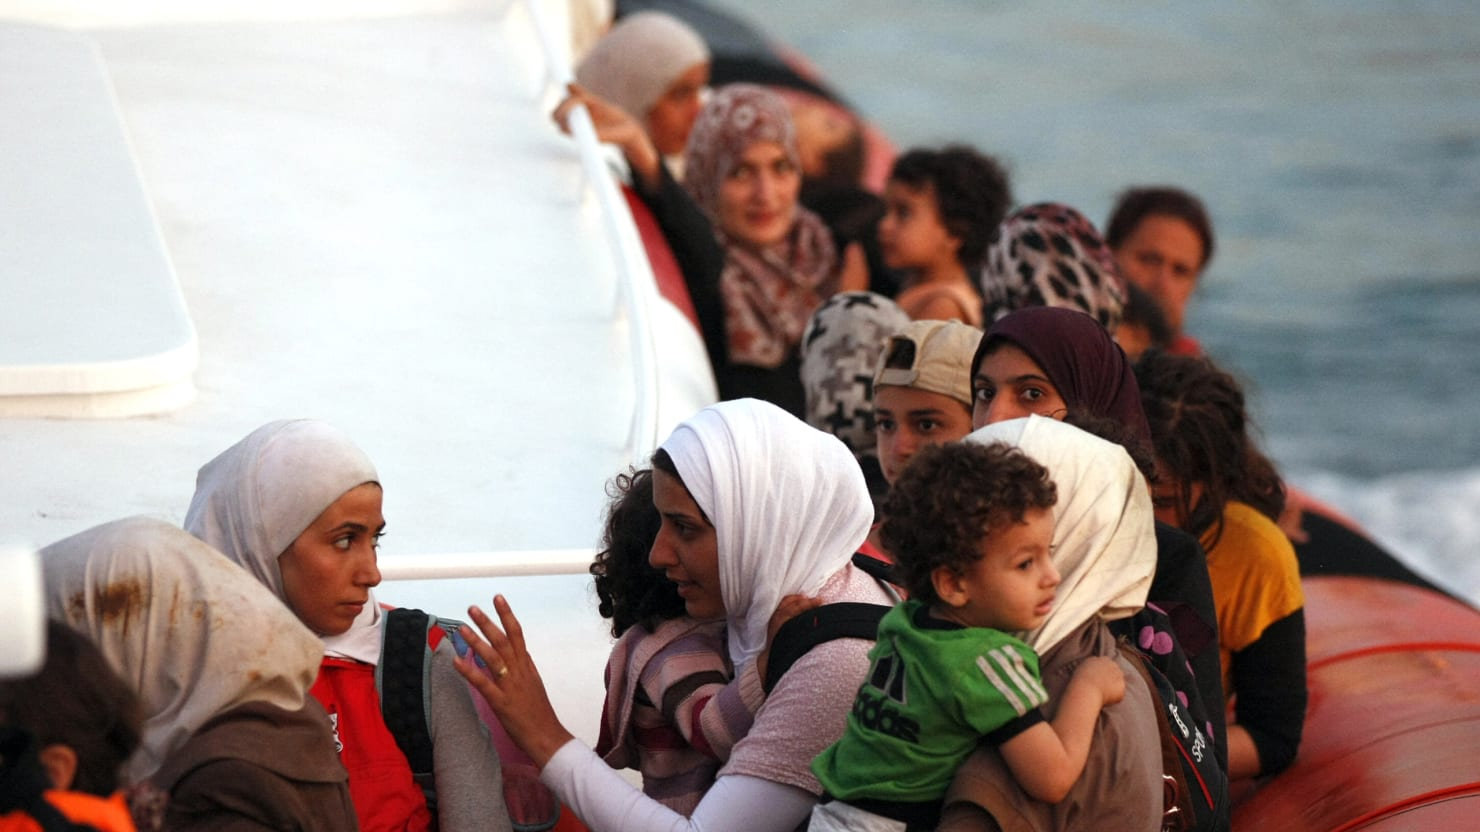 Refugees Head to Sicily in 'Biblical Exodus'